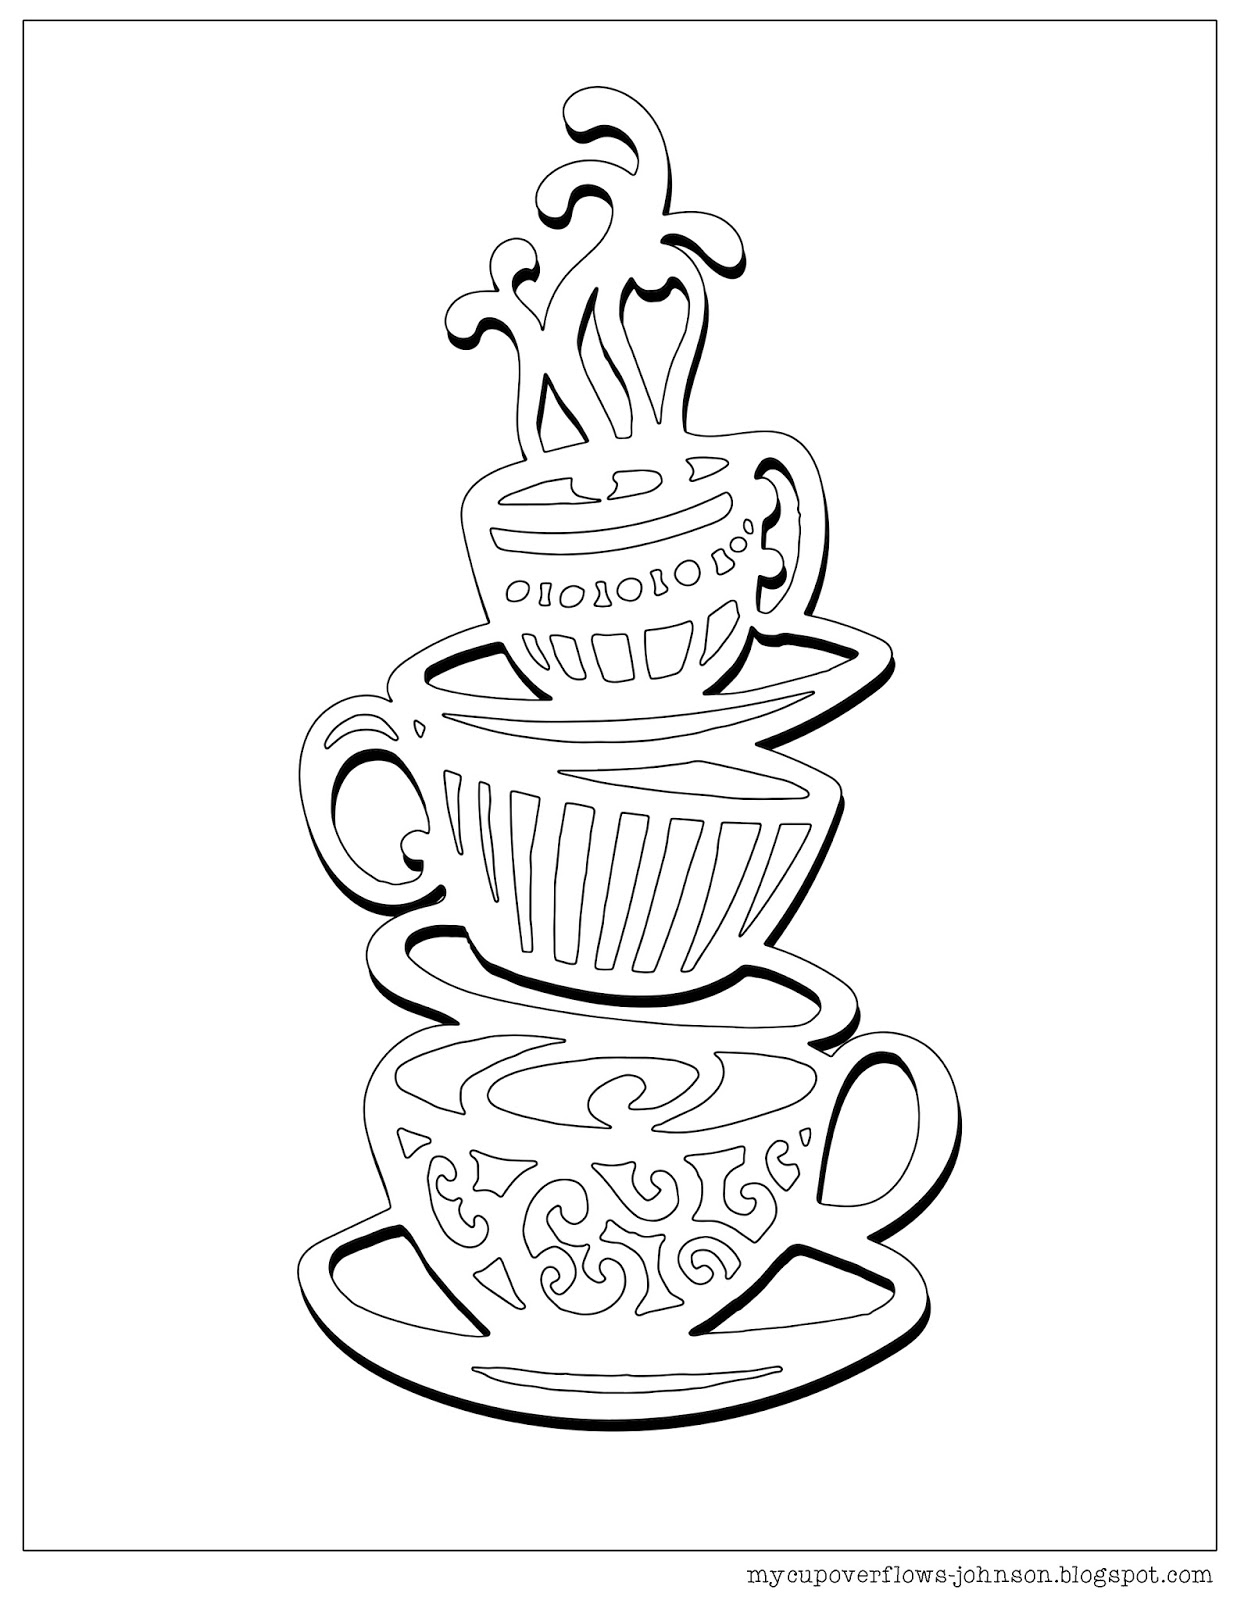 tea cup coloring page my cup overflows tea and coffee page tea coloring cup